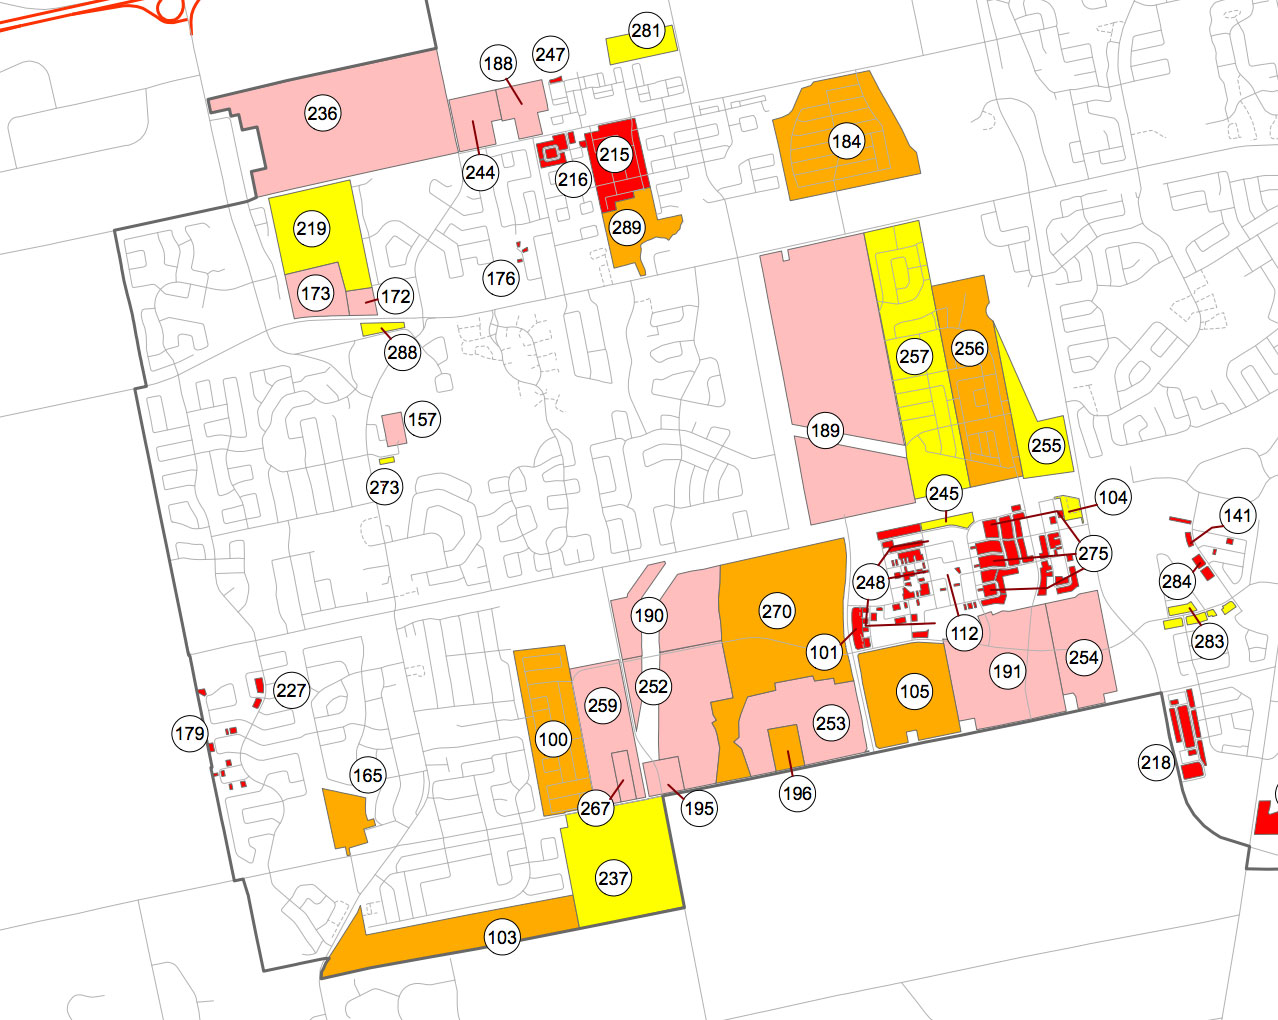 Map showing vacant residential land in Kanata and Stittsville